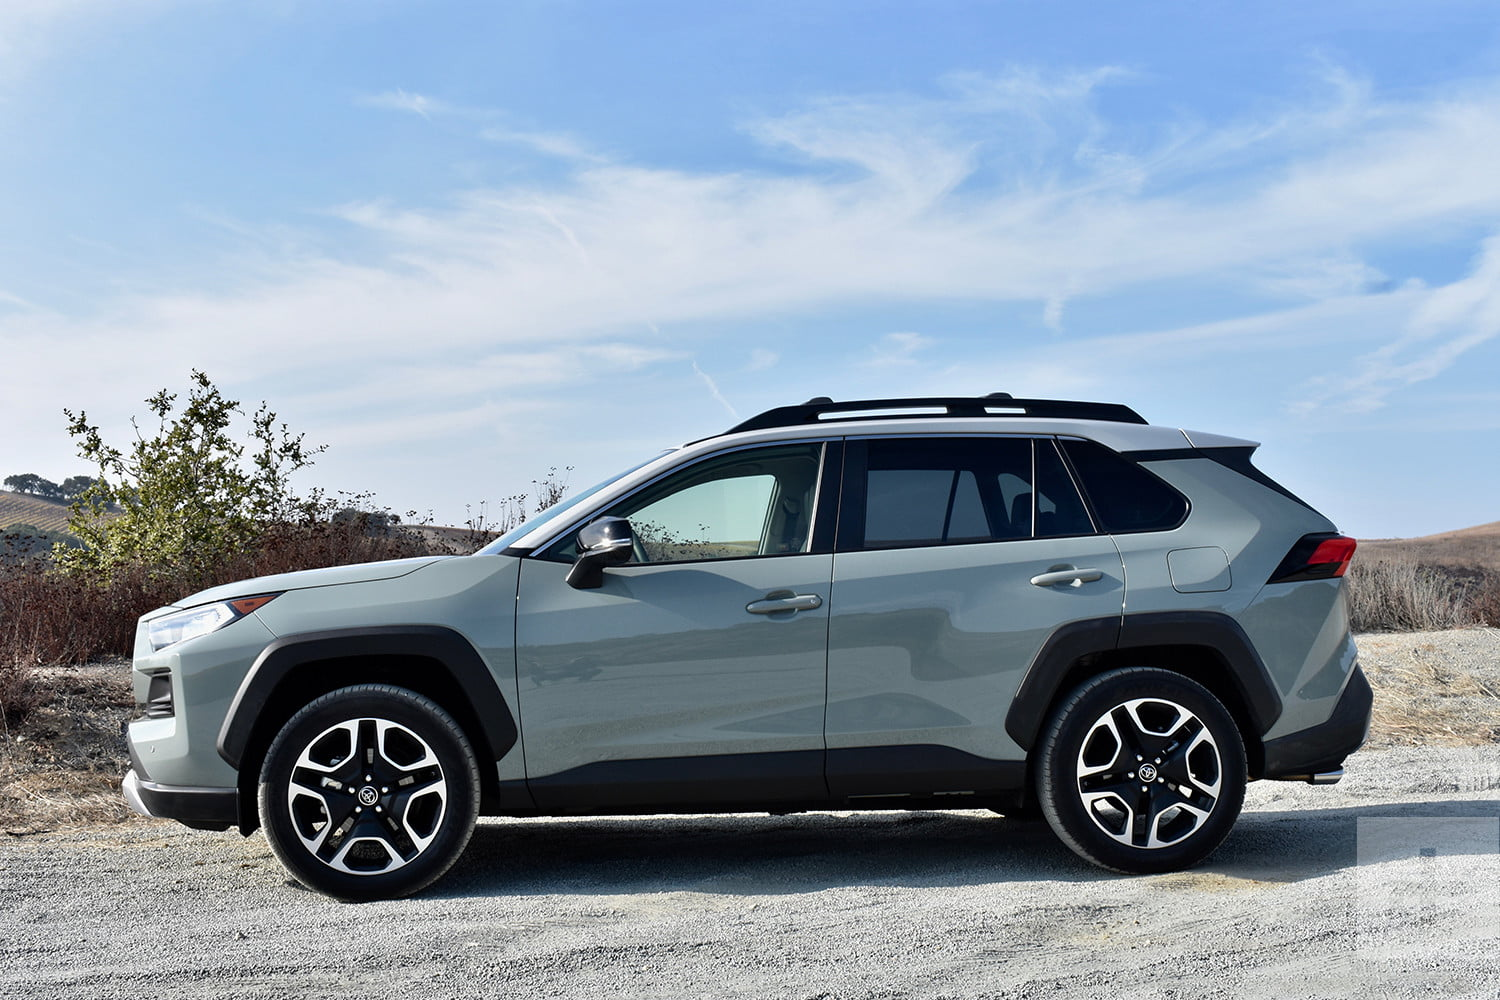 While other crossovers dabble in dirt, Toyota's truck-like RAV4 doubles down